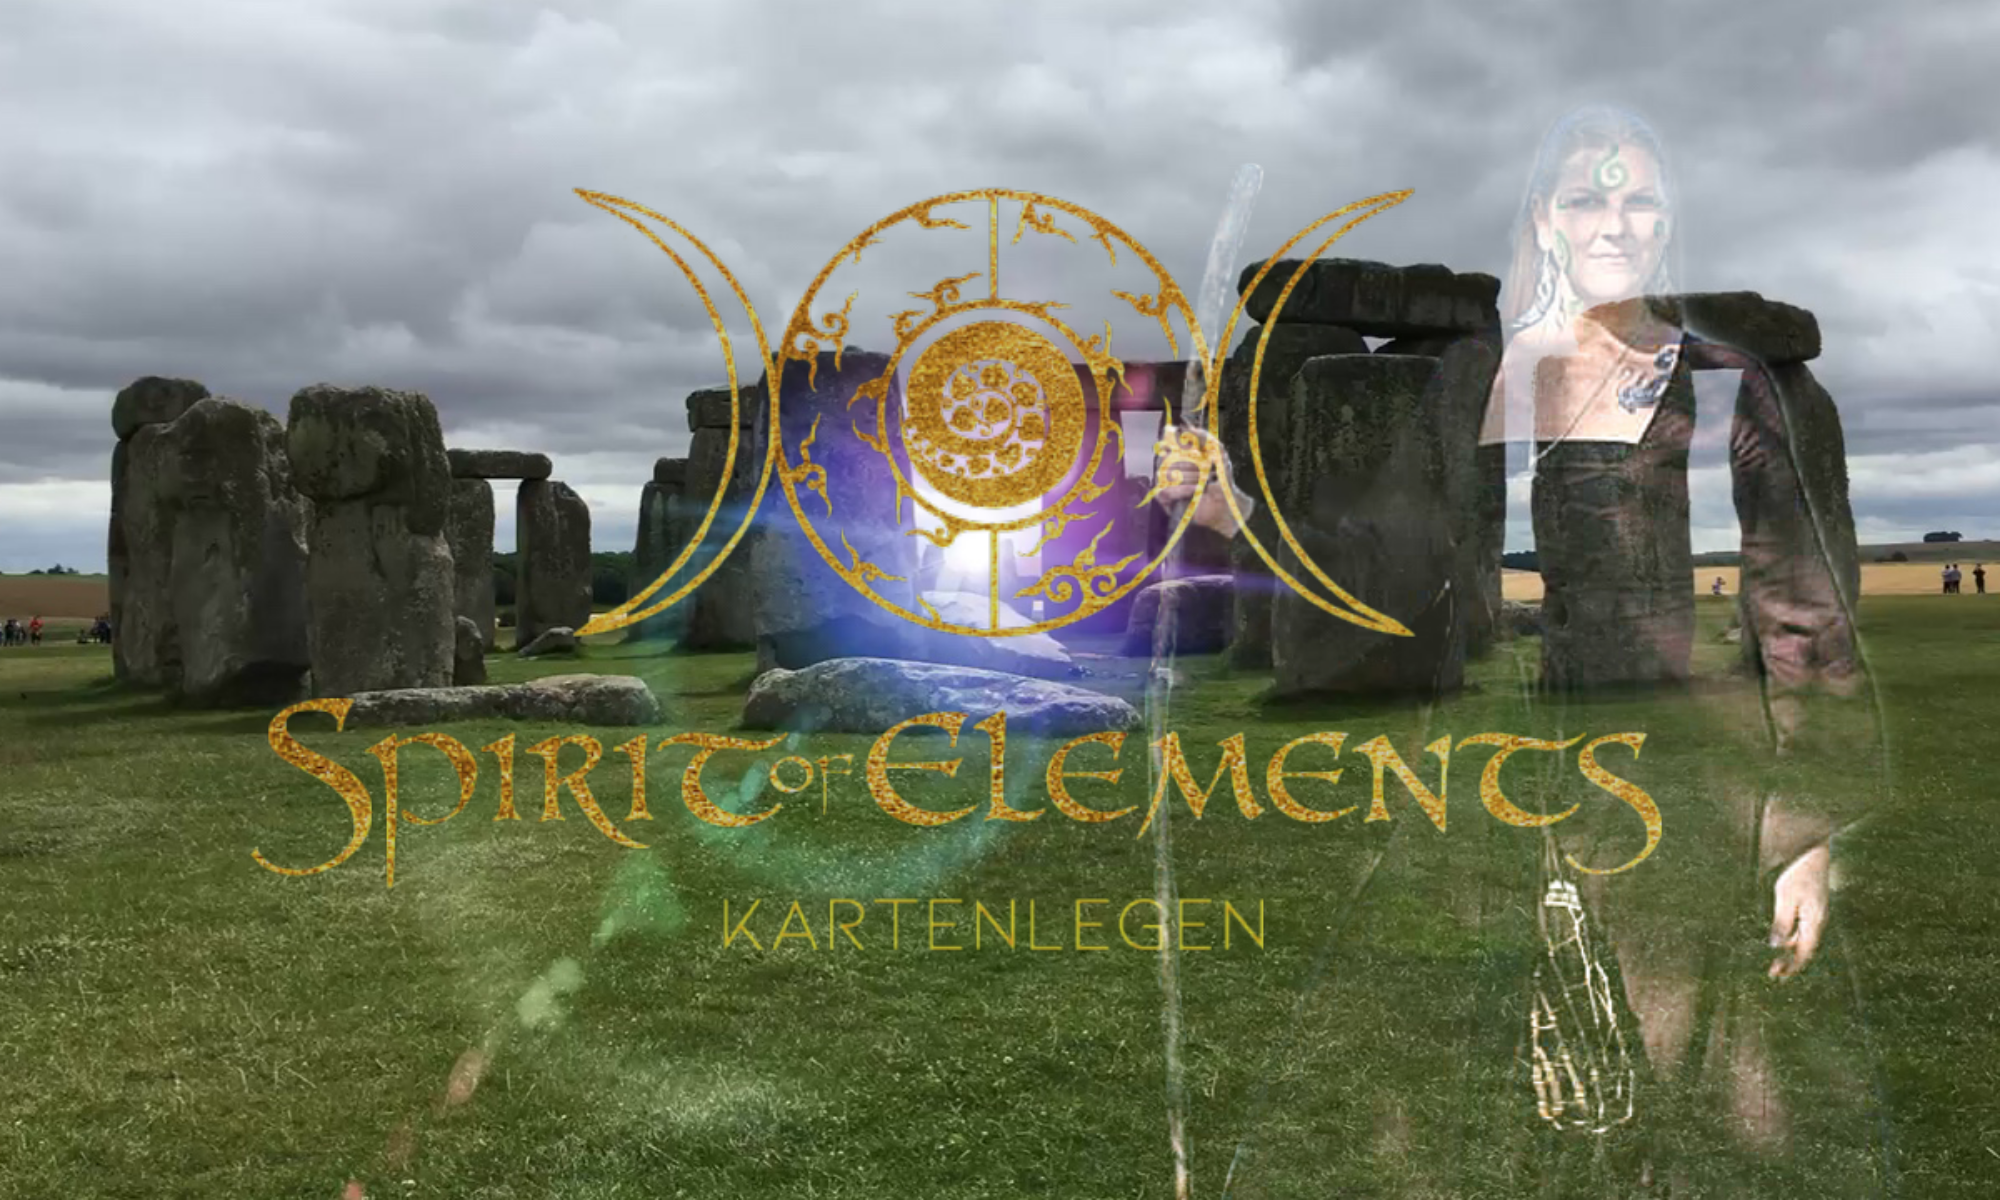 Kartenlegen By Spirit of Elements